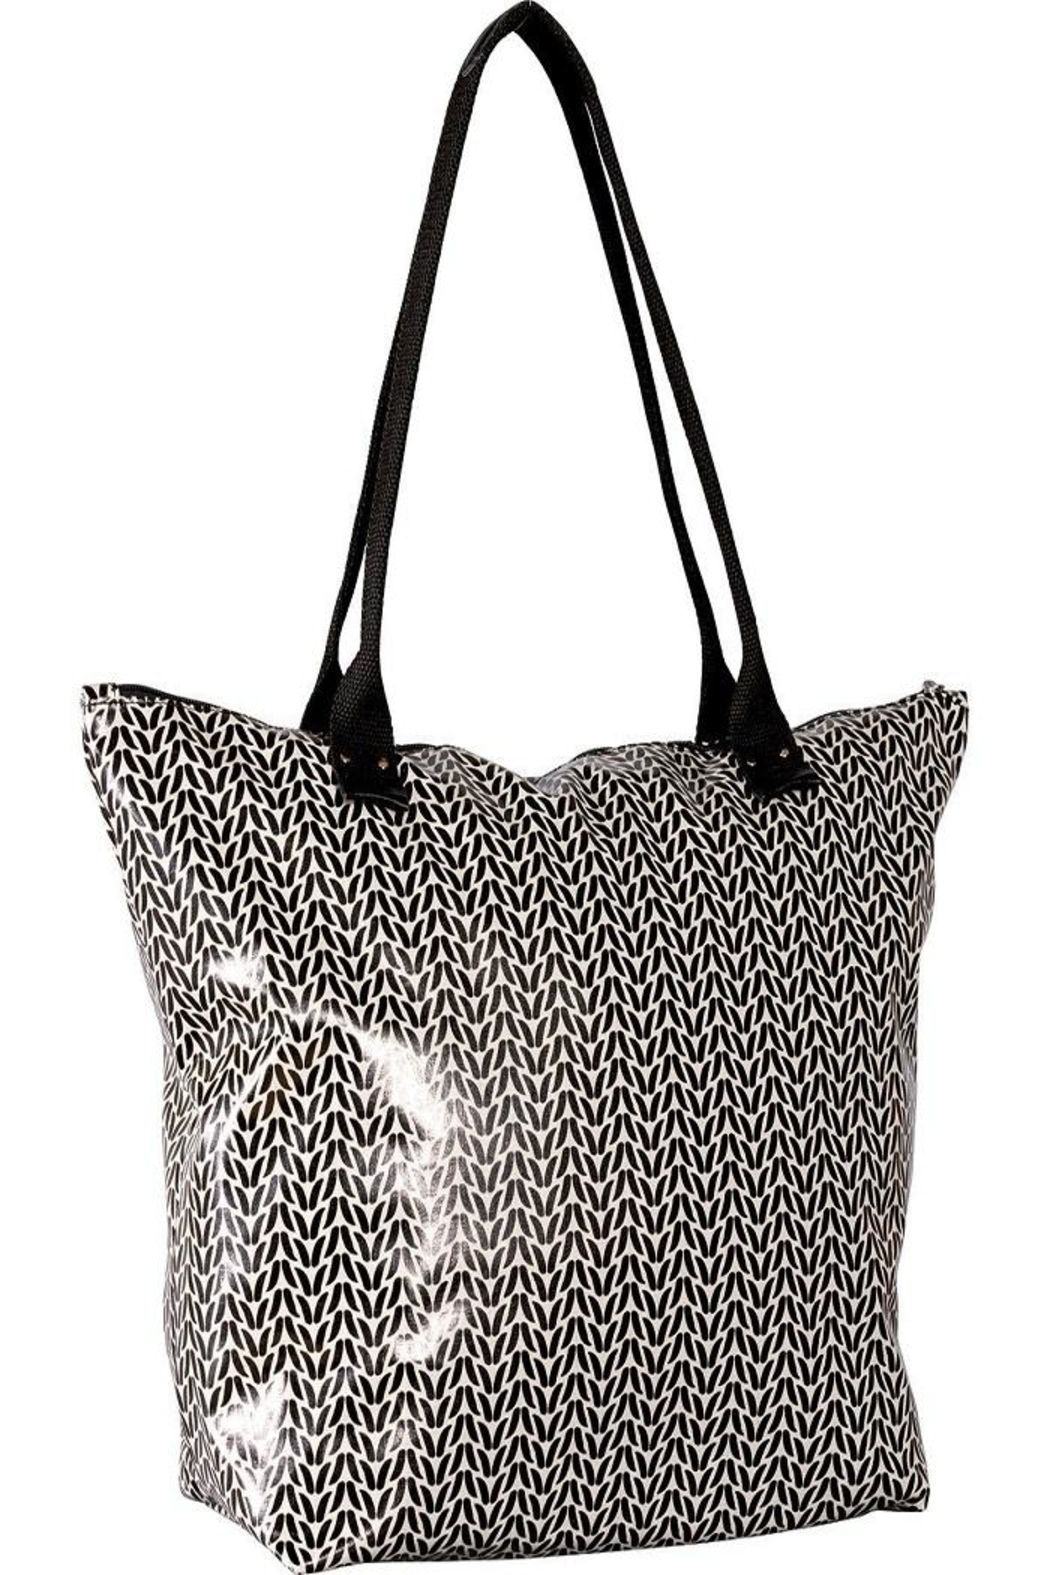 Rock Flower Paper Black Carryall Bag From Tennessee By Spa 9700